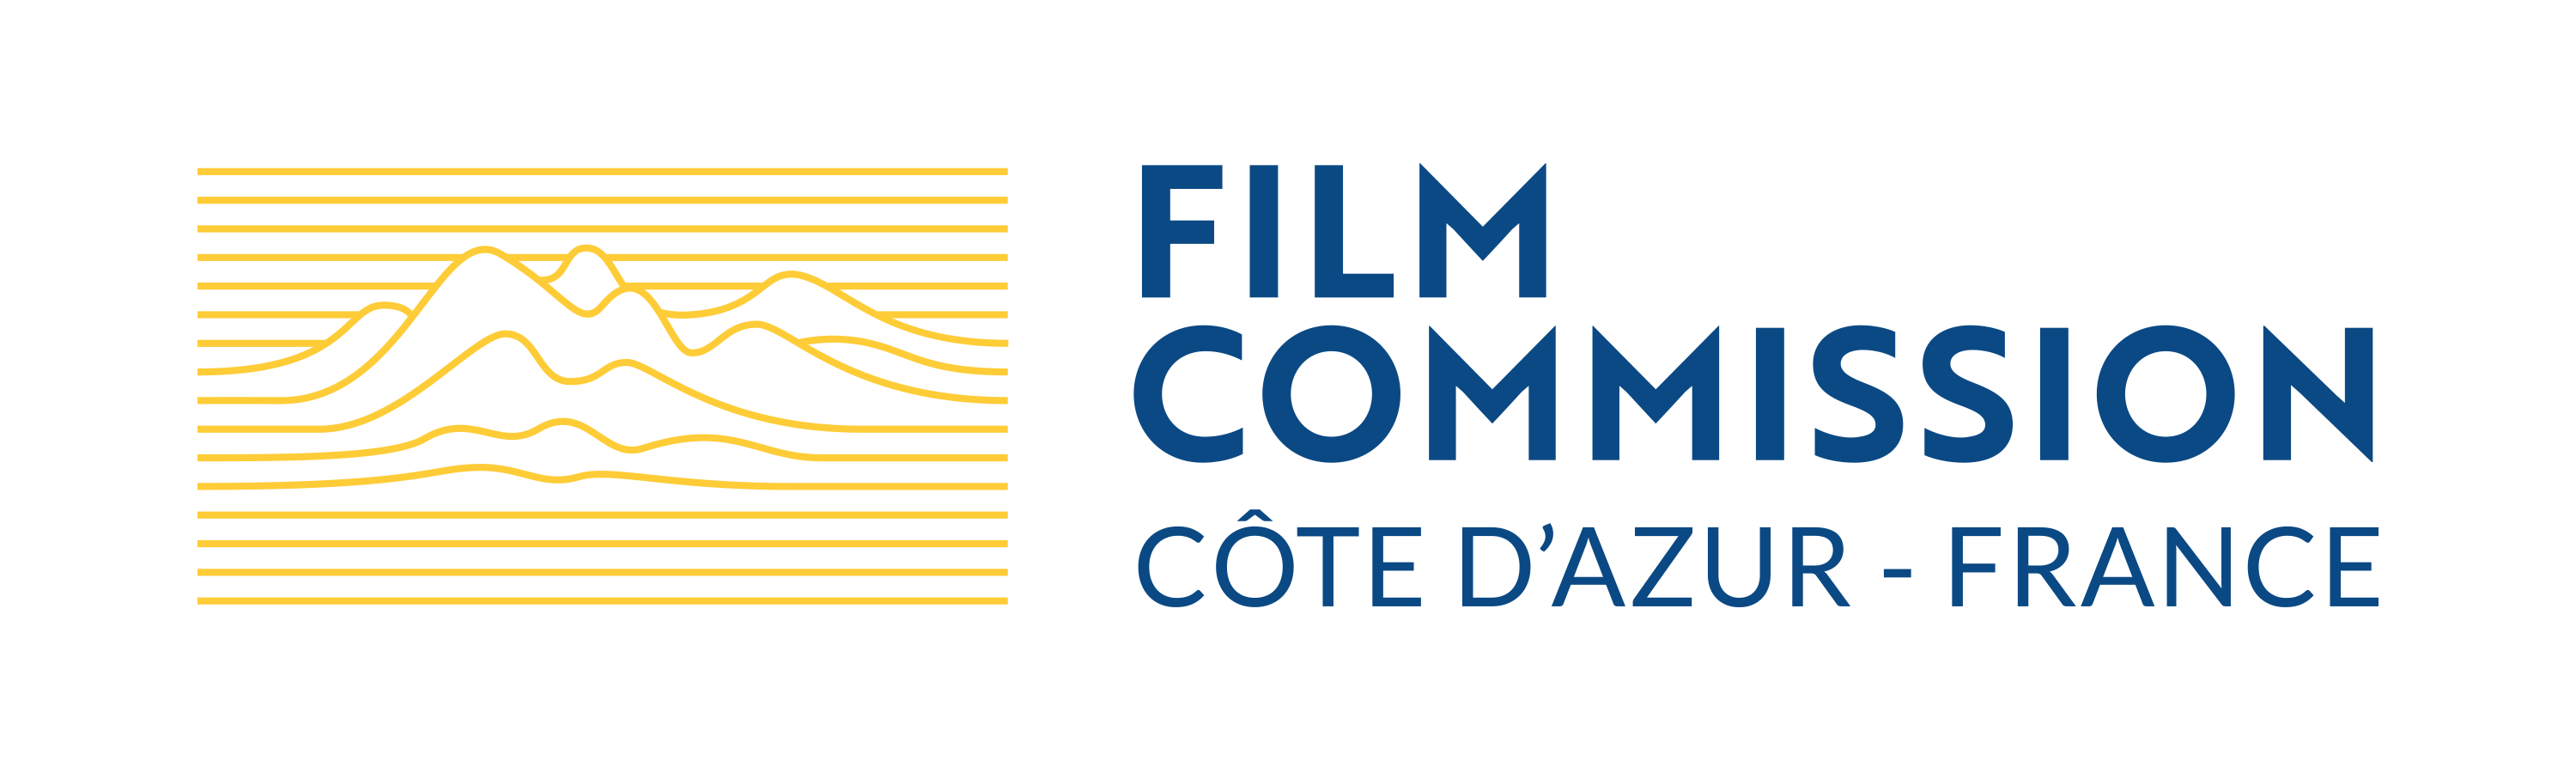 Film Commission Logo - Yellow & Blue